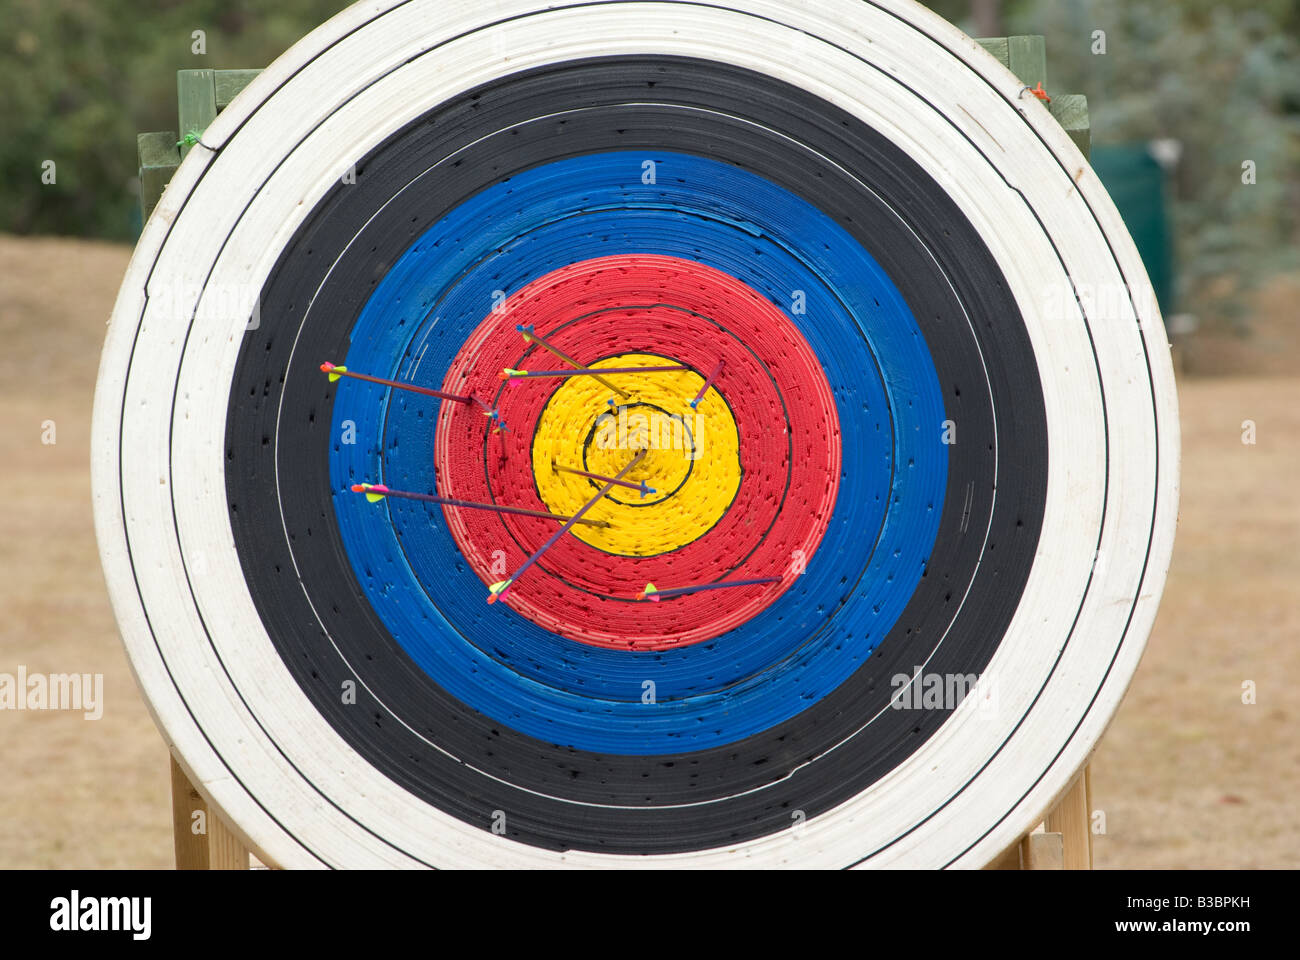 image of an archery target full of arrows - Stock Image